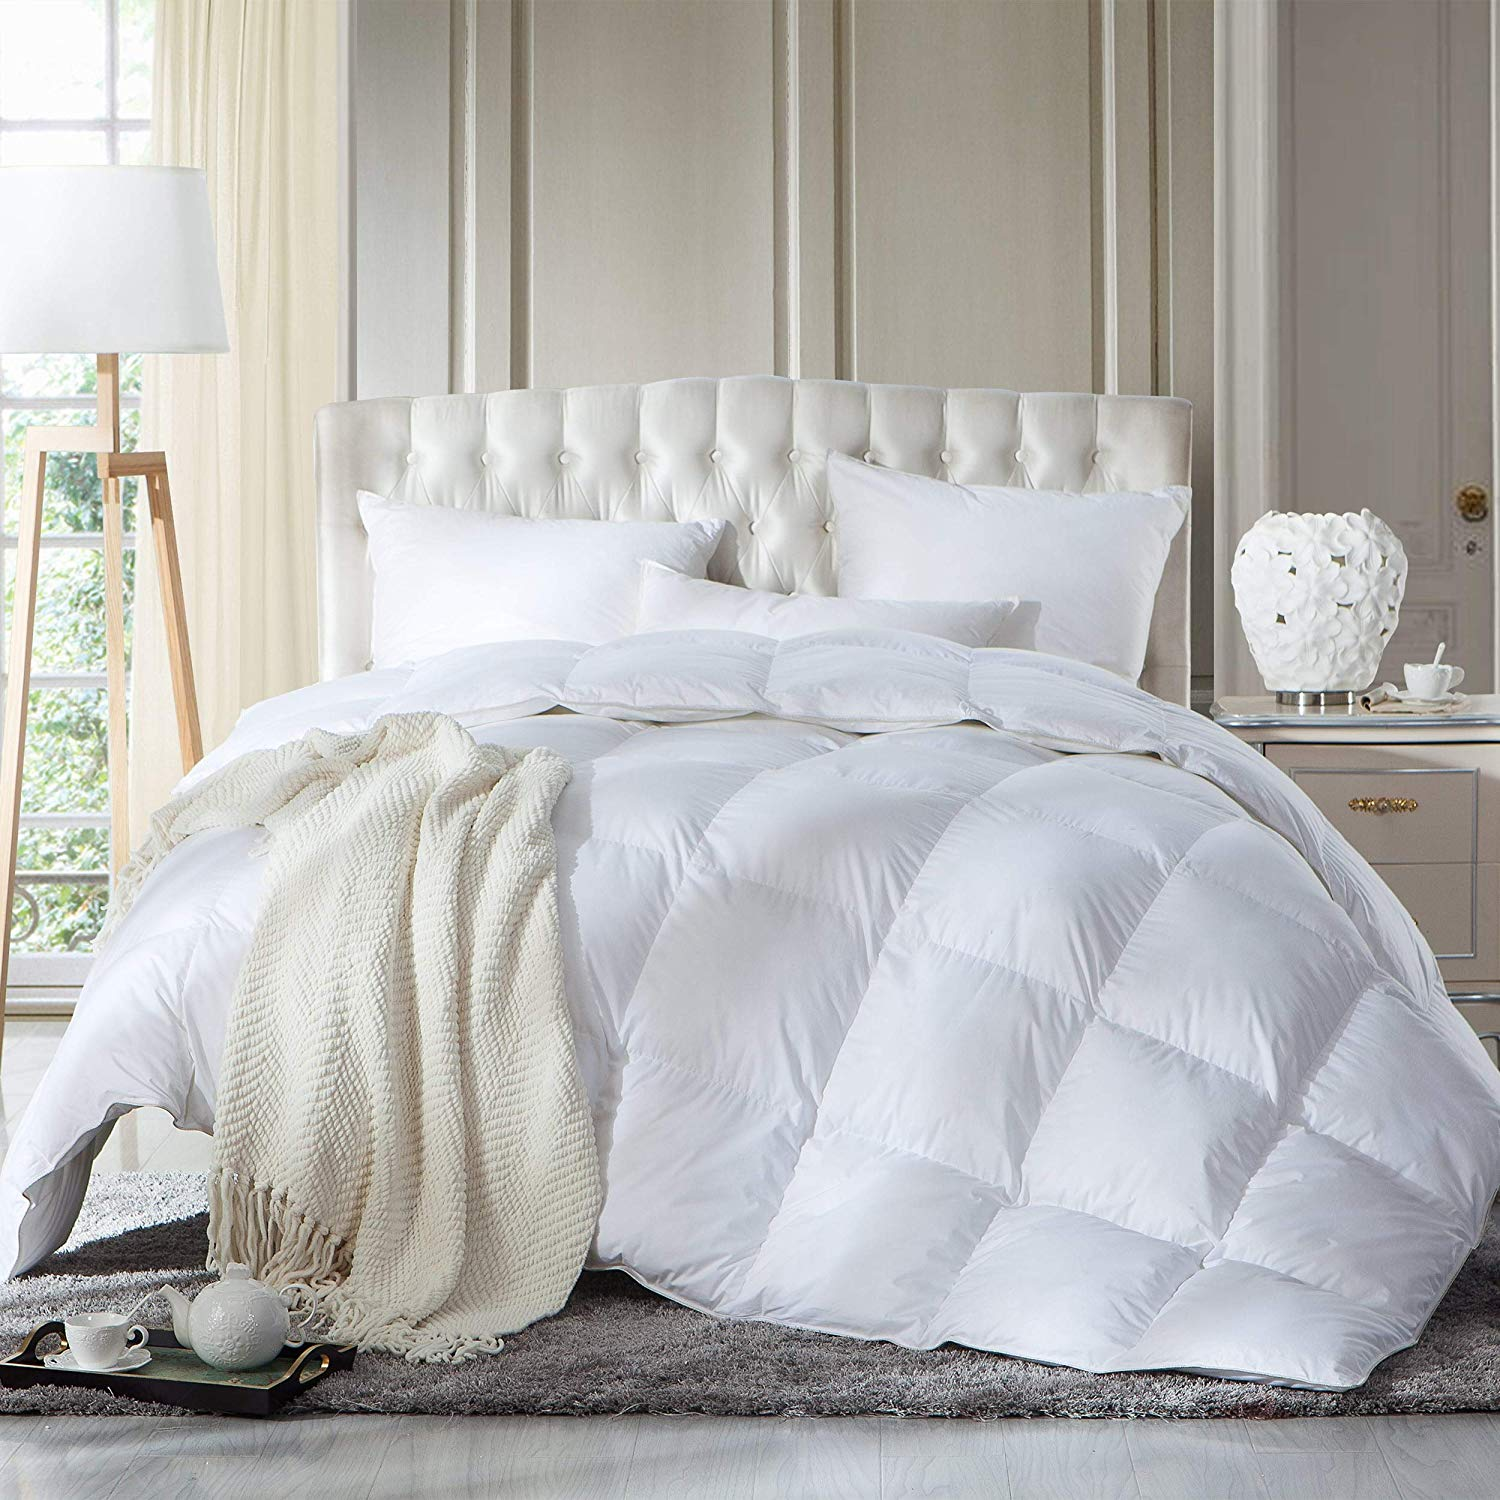 Egyptian Bedding Lightweight Comforter Review by www.snoremagazine.com